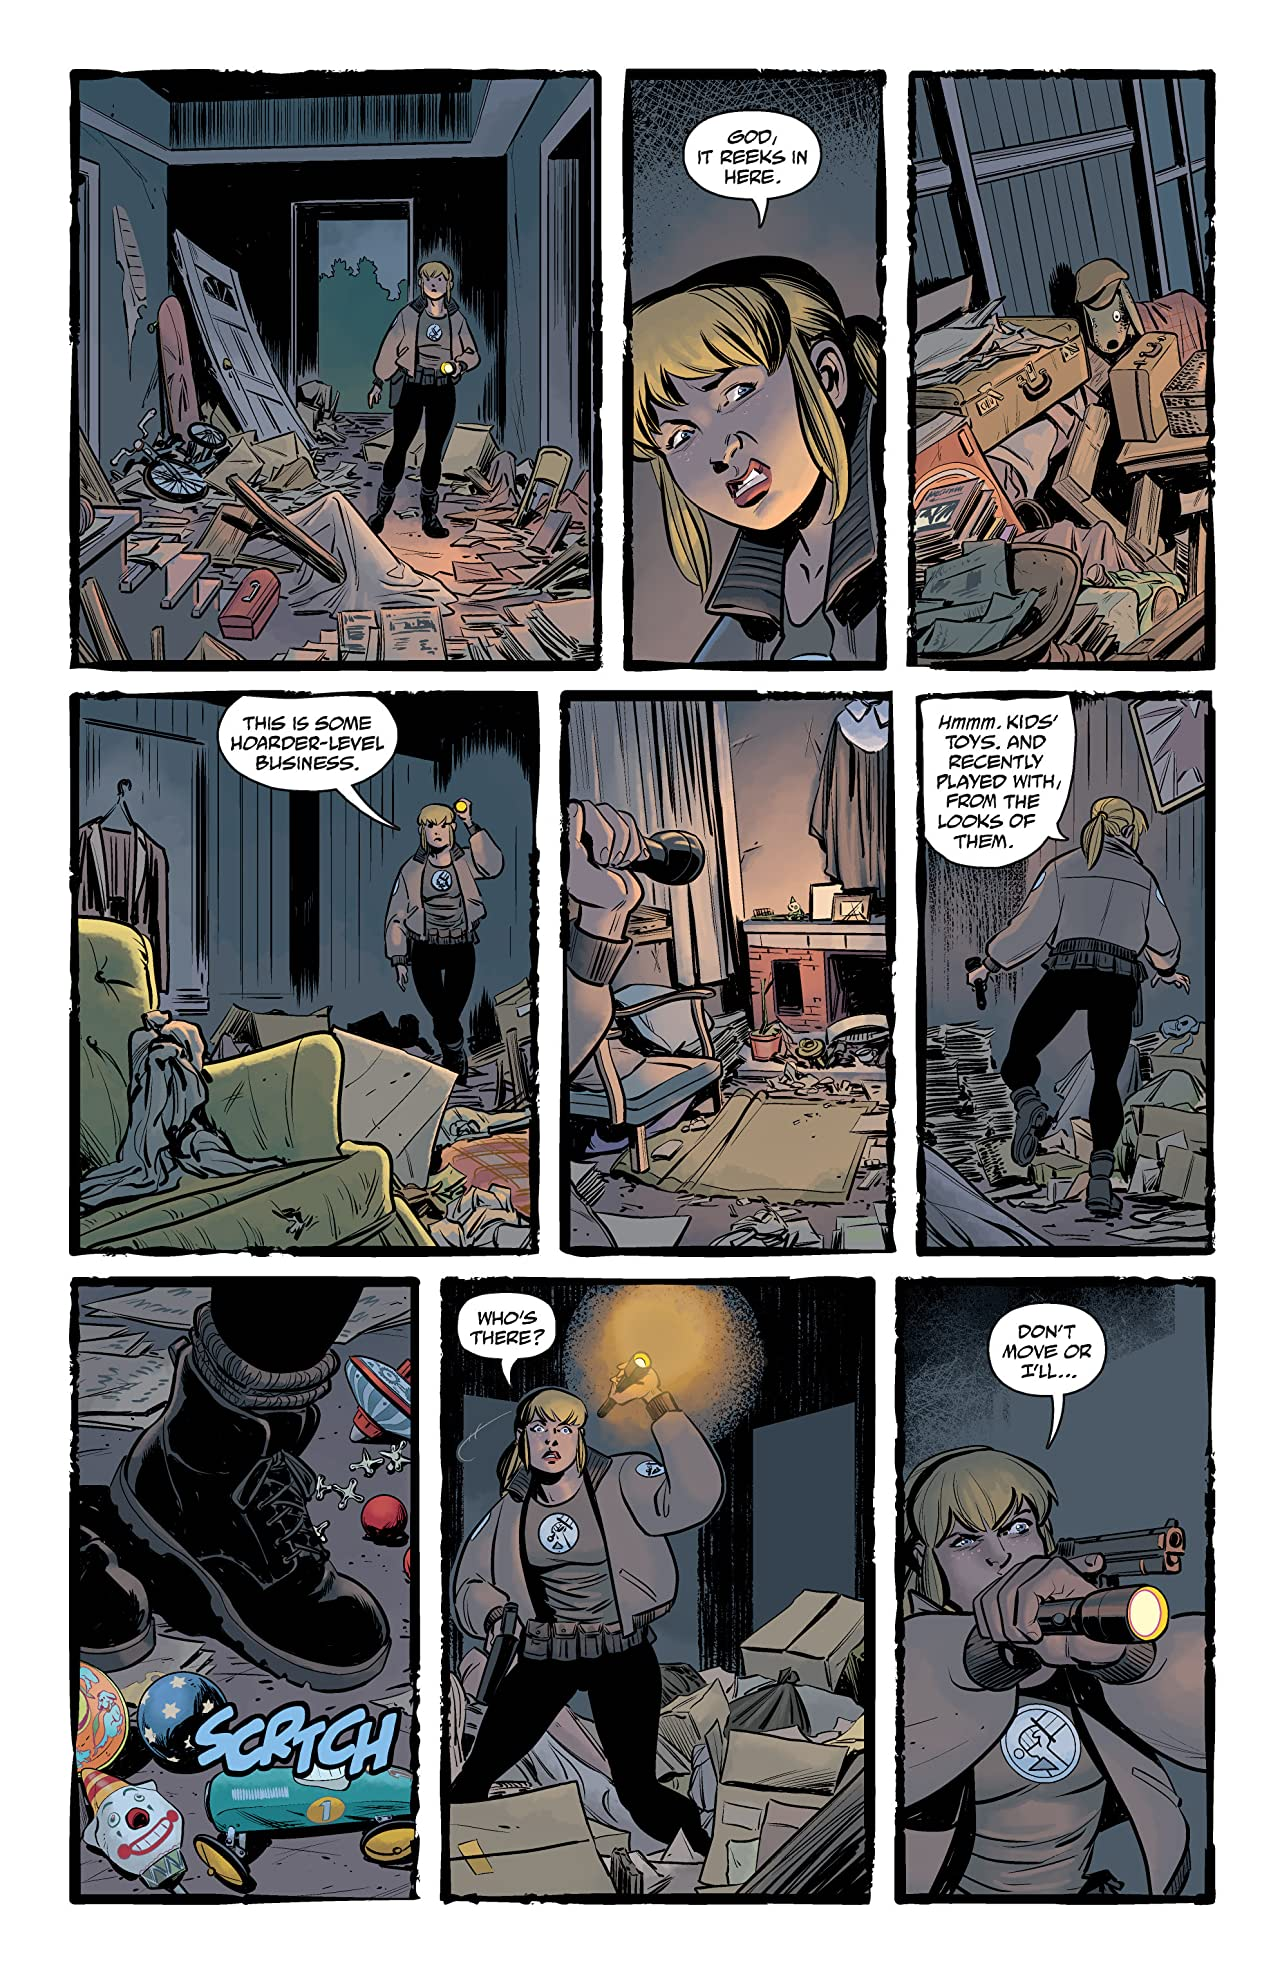 B.P.R.D.: Hell on Earth #141